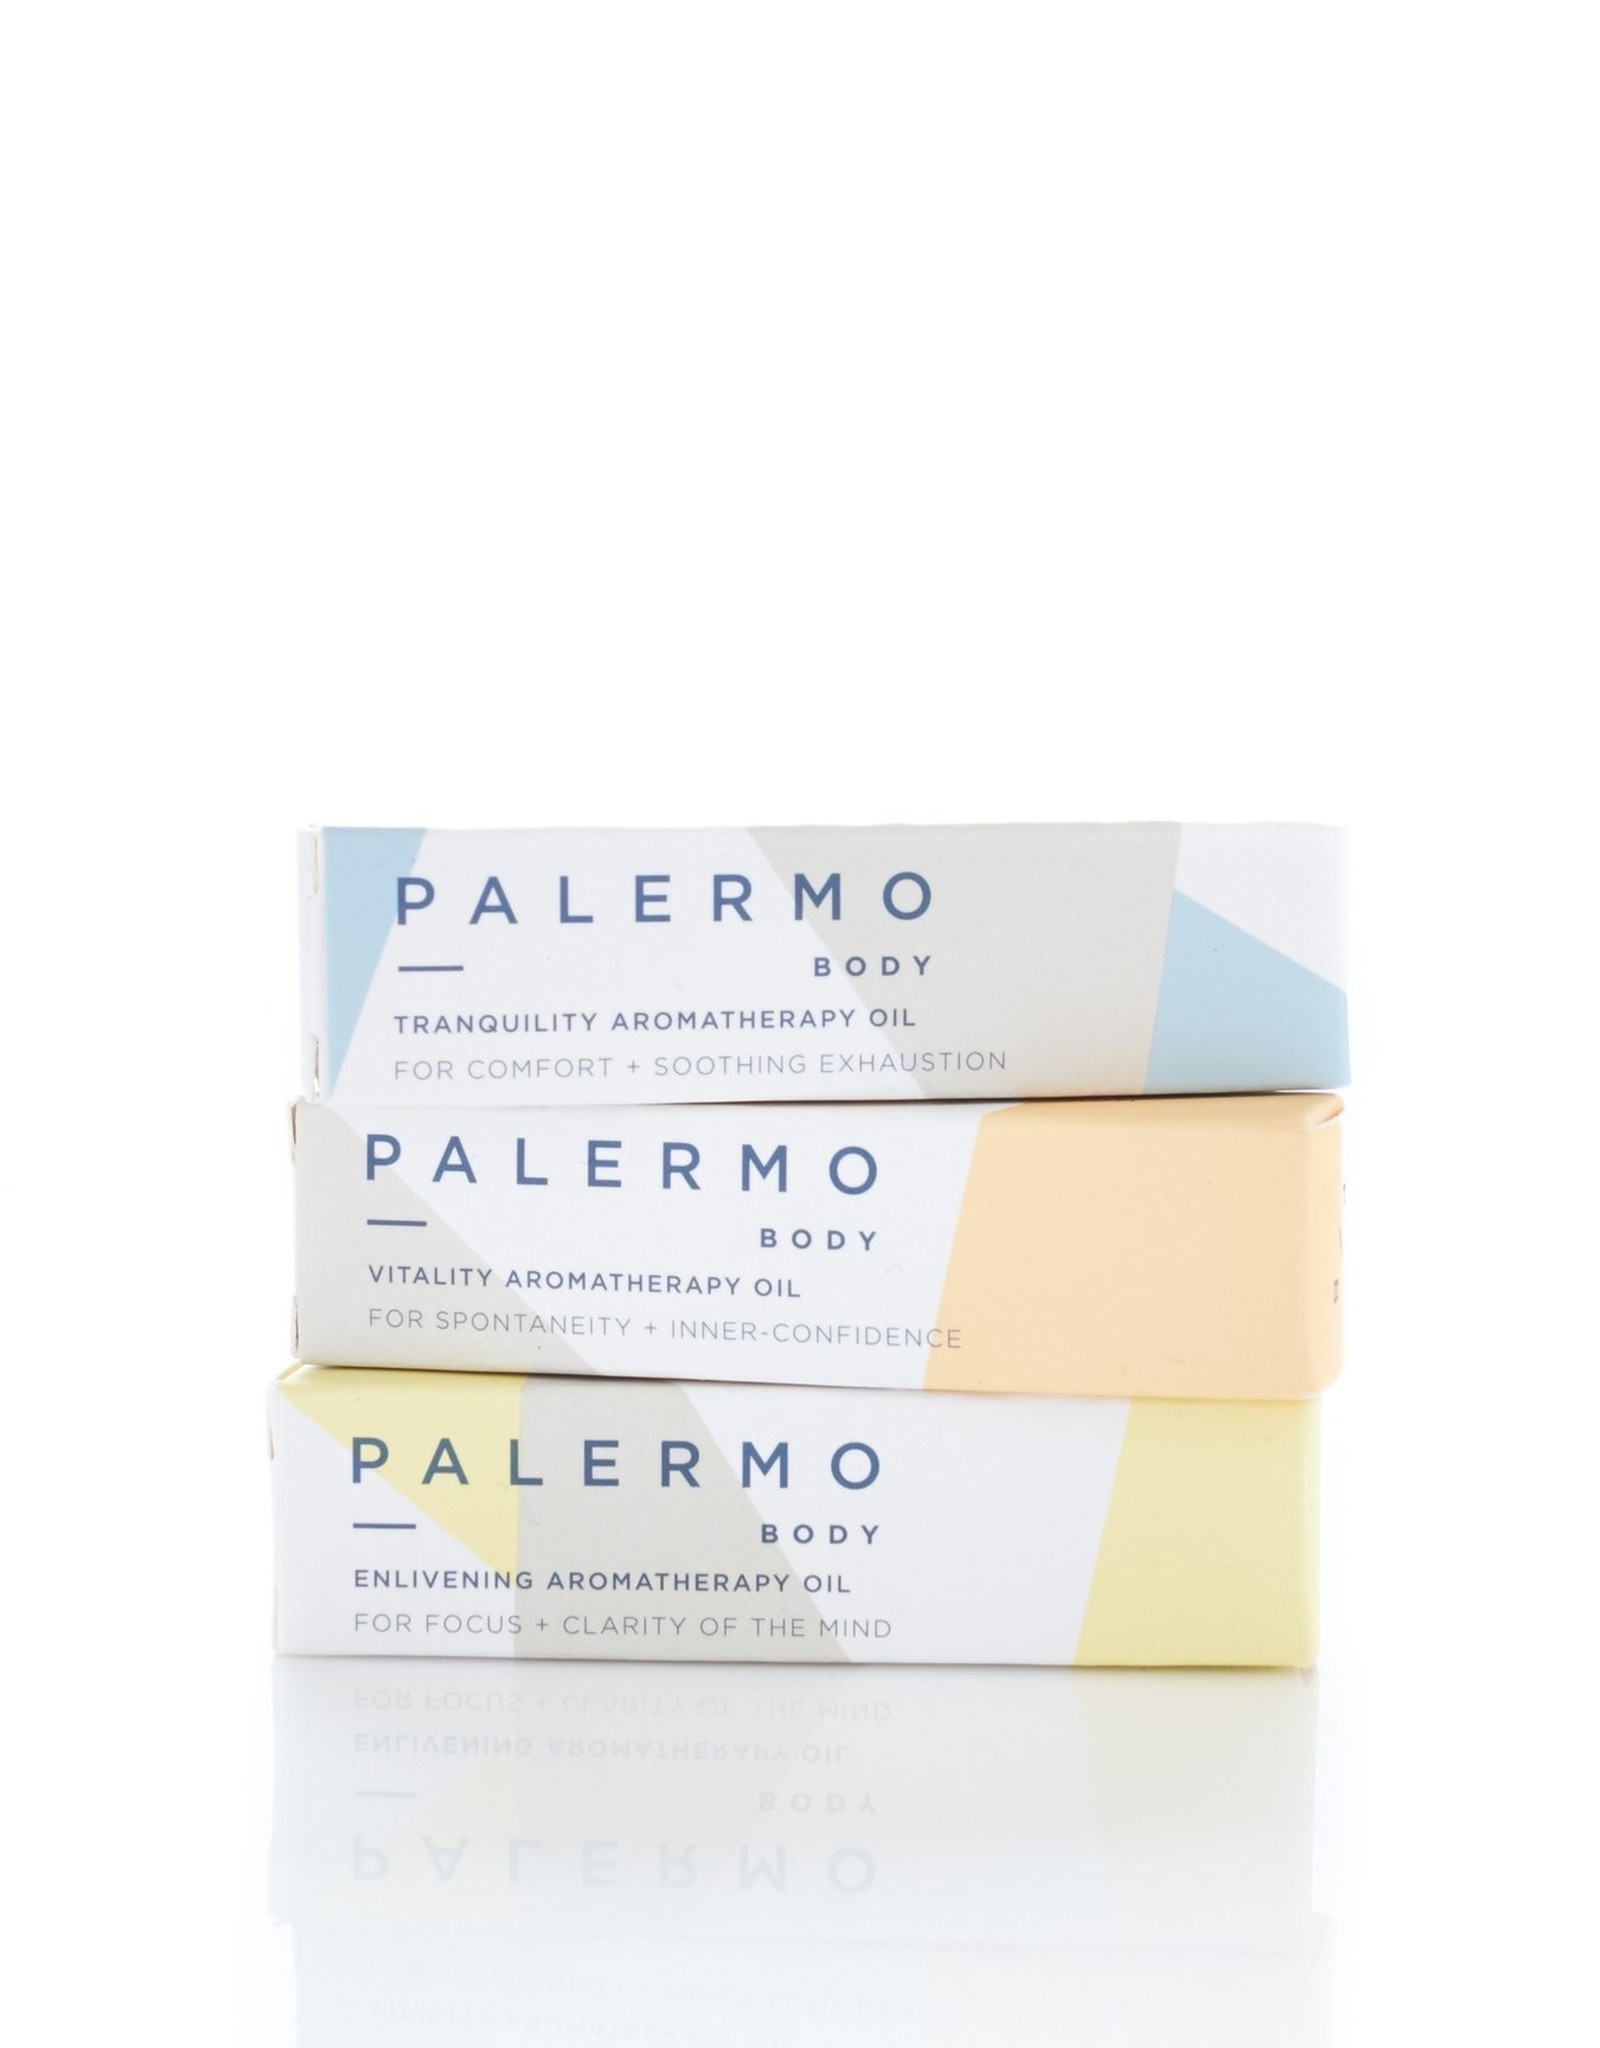 Palermo Body Aromatherapy Oil